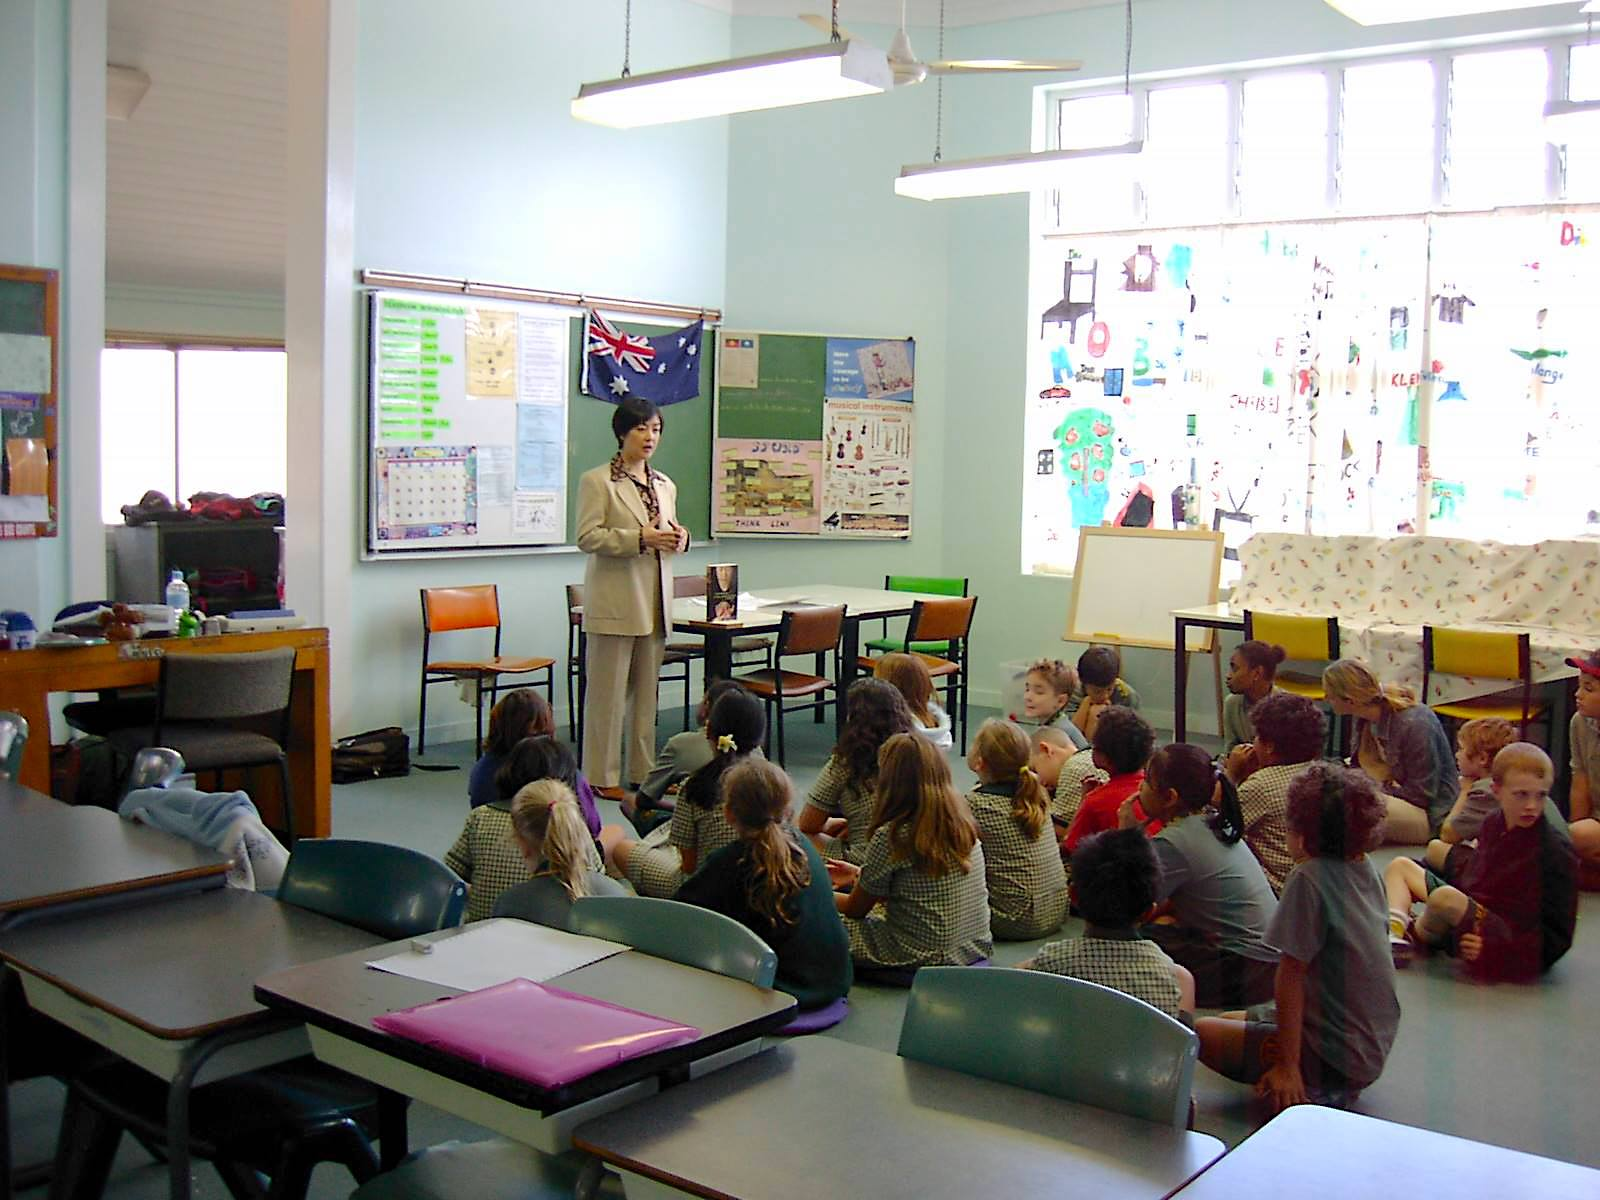 Jennifer invited to the East Brisbane State School in Brisbane, QLD, Australia, to introduce her book in May, 2005